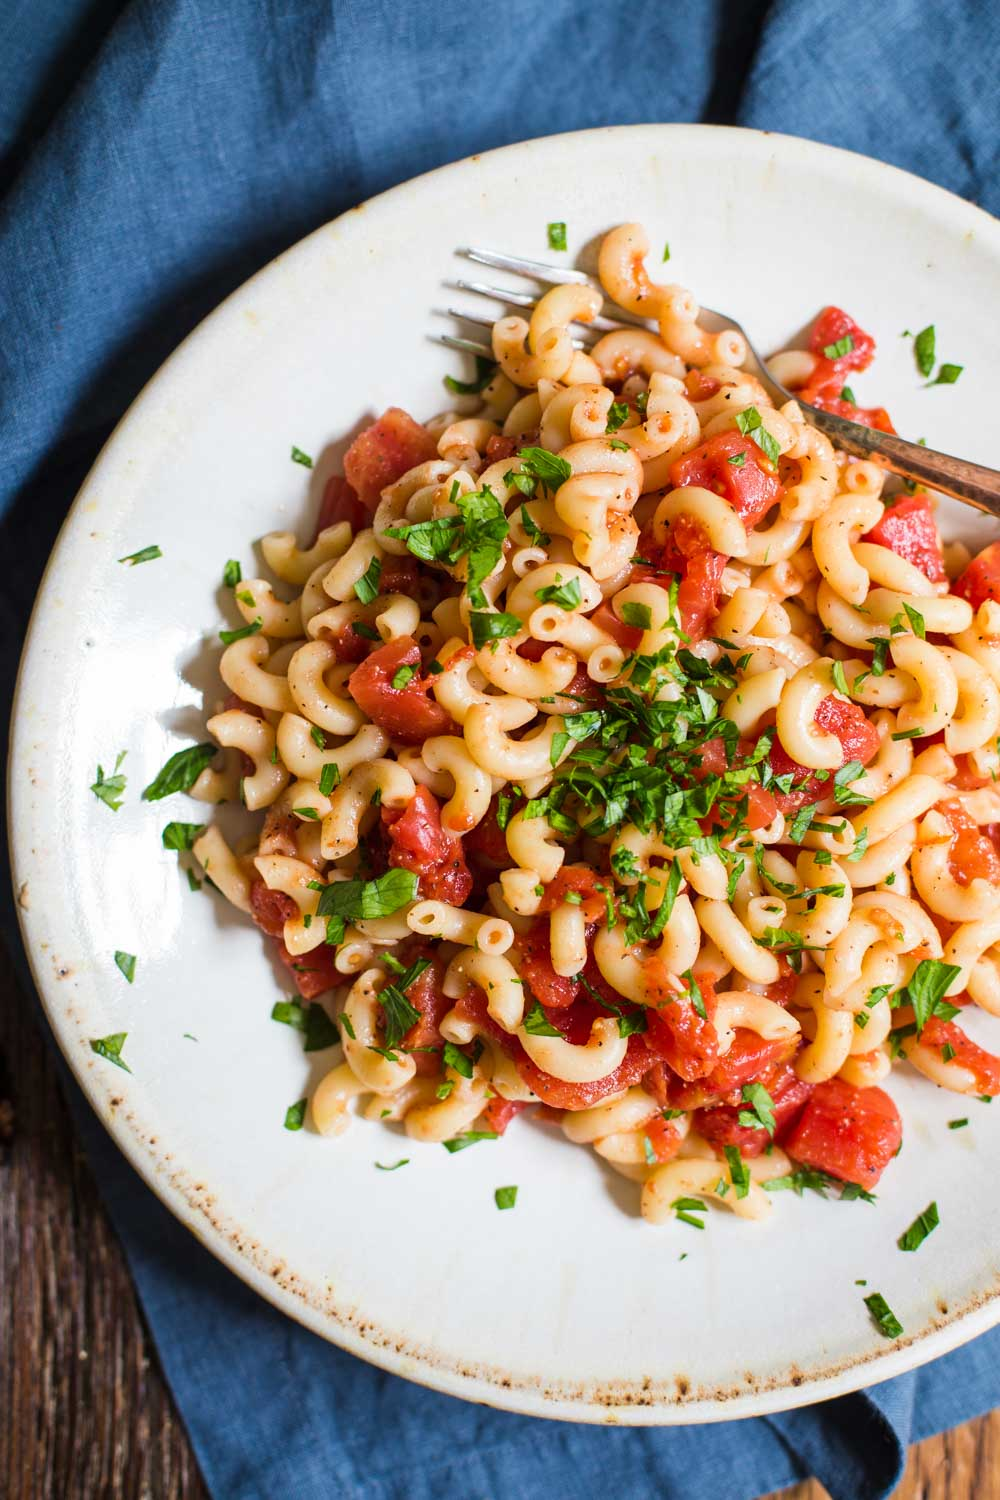 Simple Tomato Pasta- this simple macaroni dish is SUPER easy to throw together, completely vegan, and good for leftover lunches!